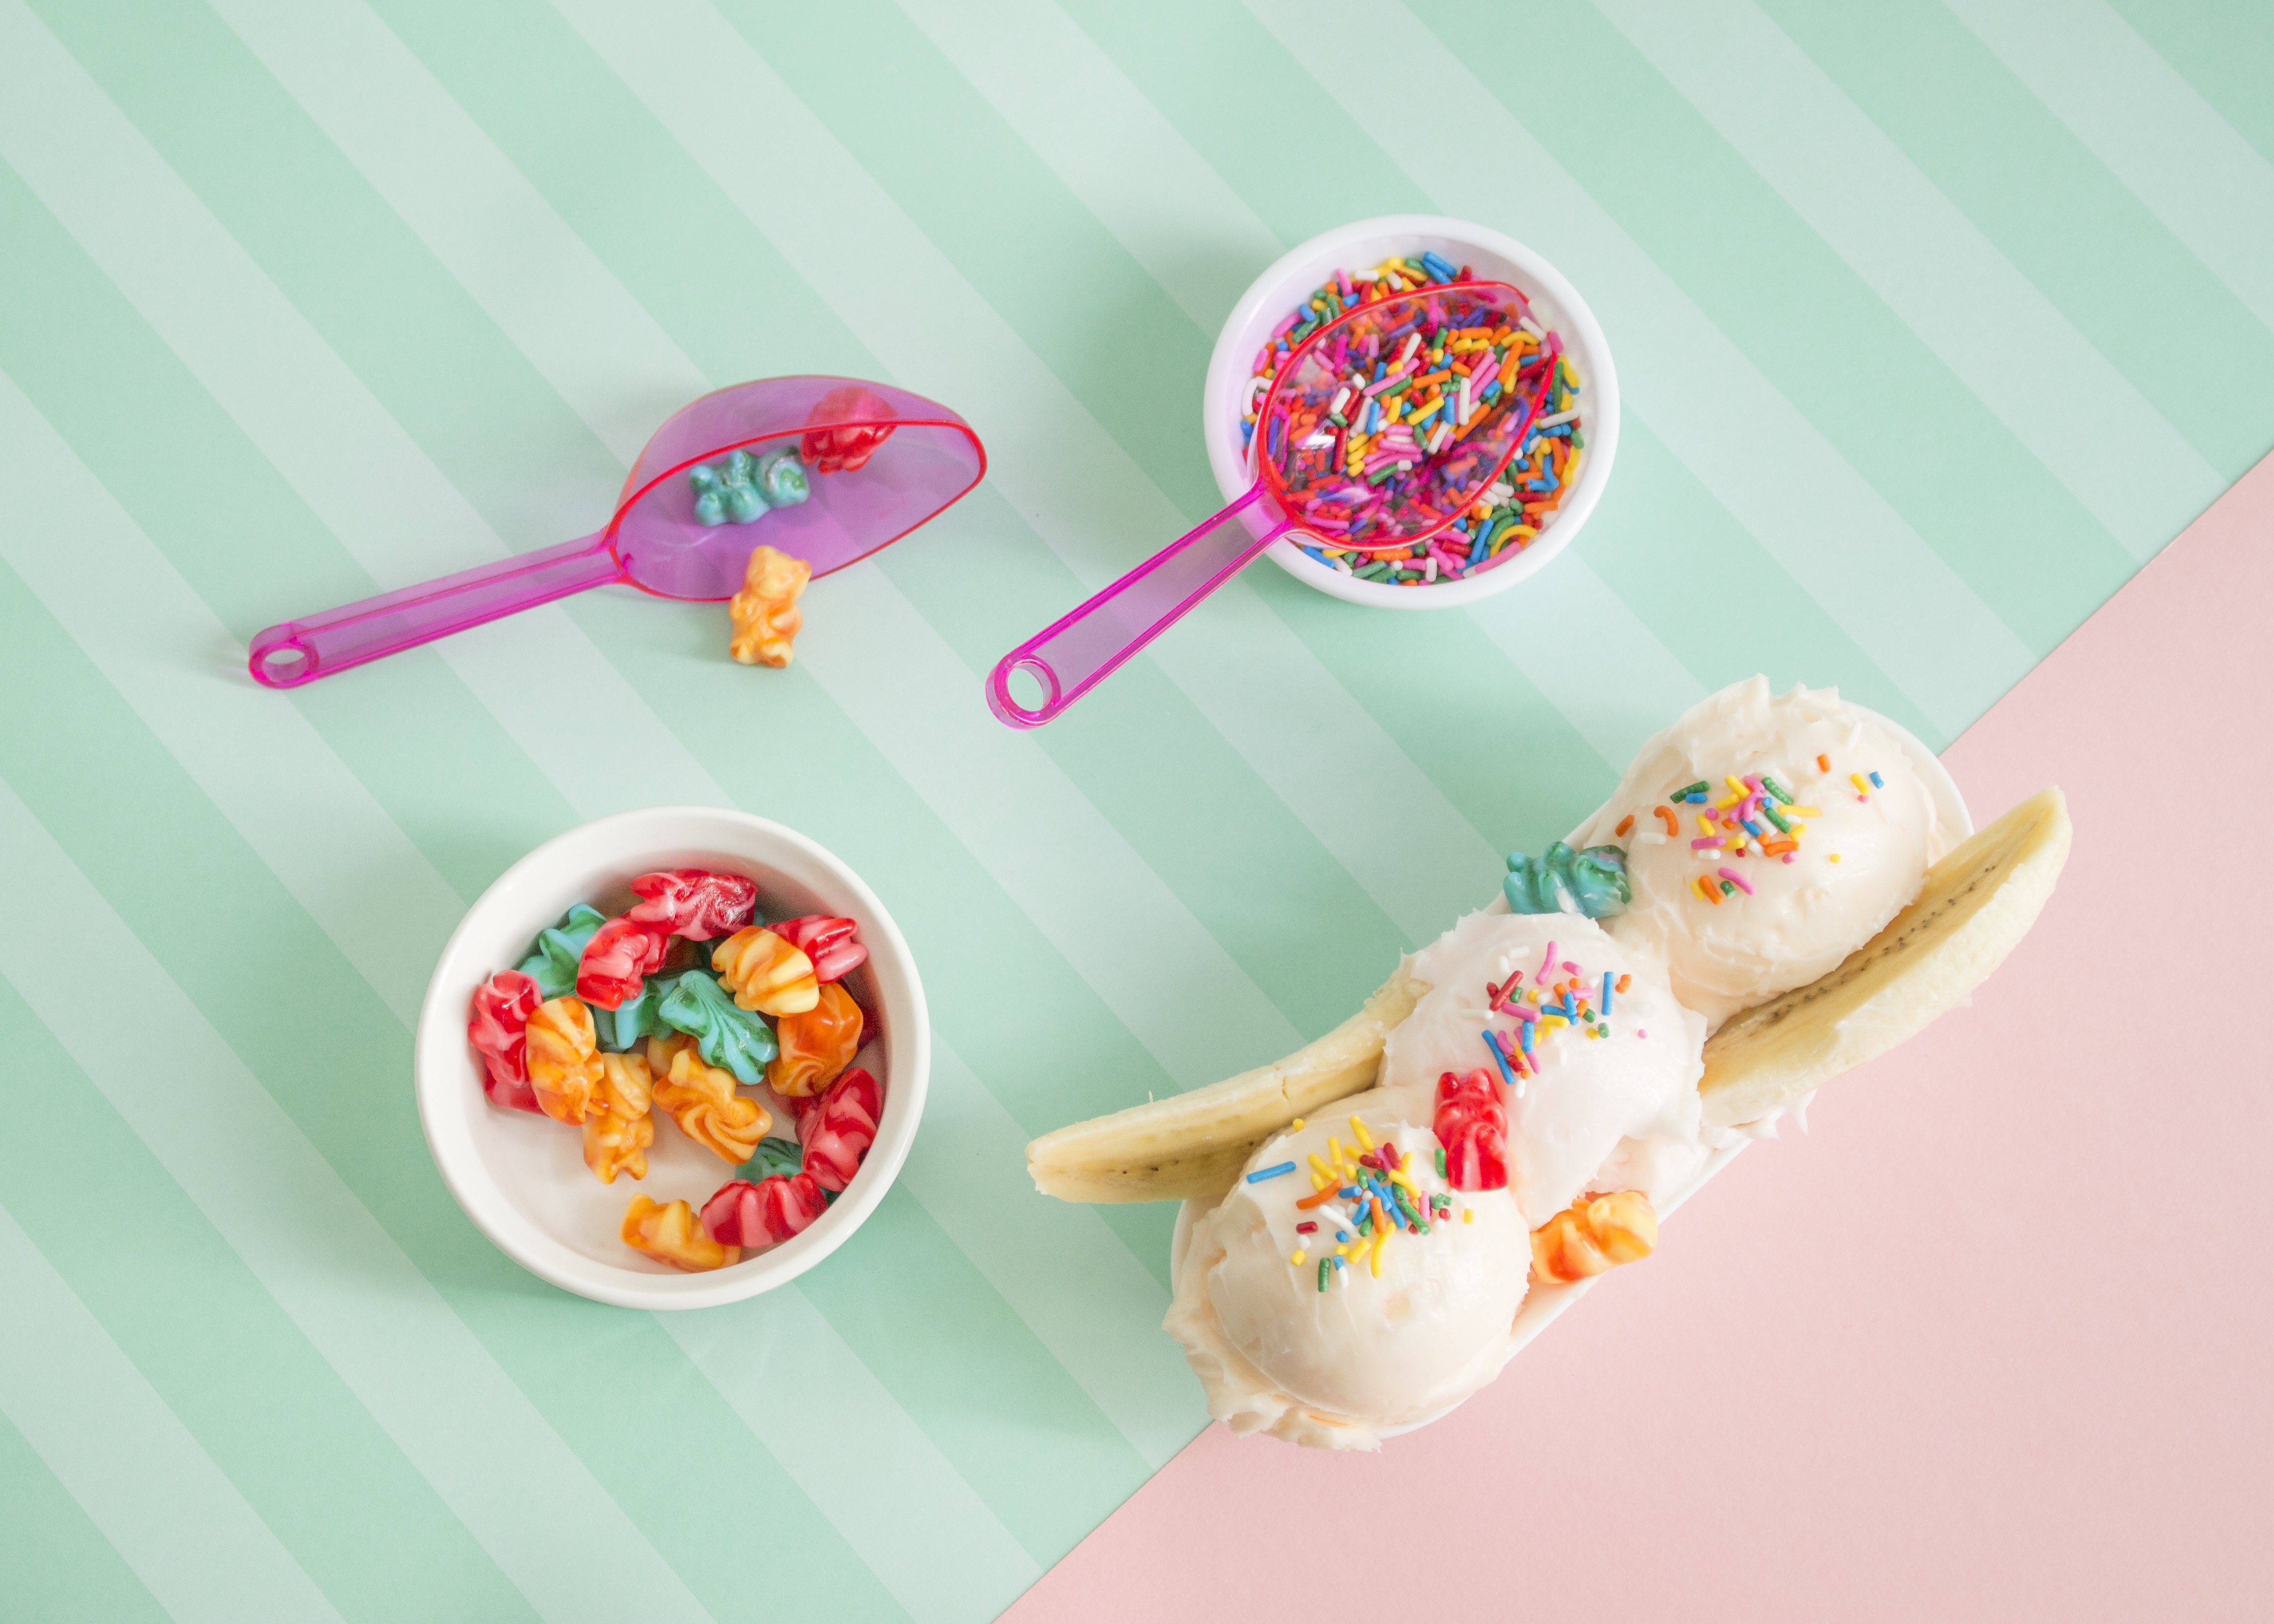 How to DIY Fake Ice Cream for Food Photography